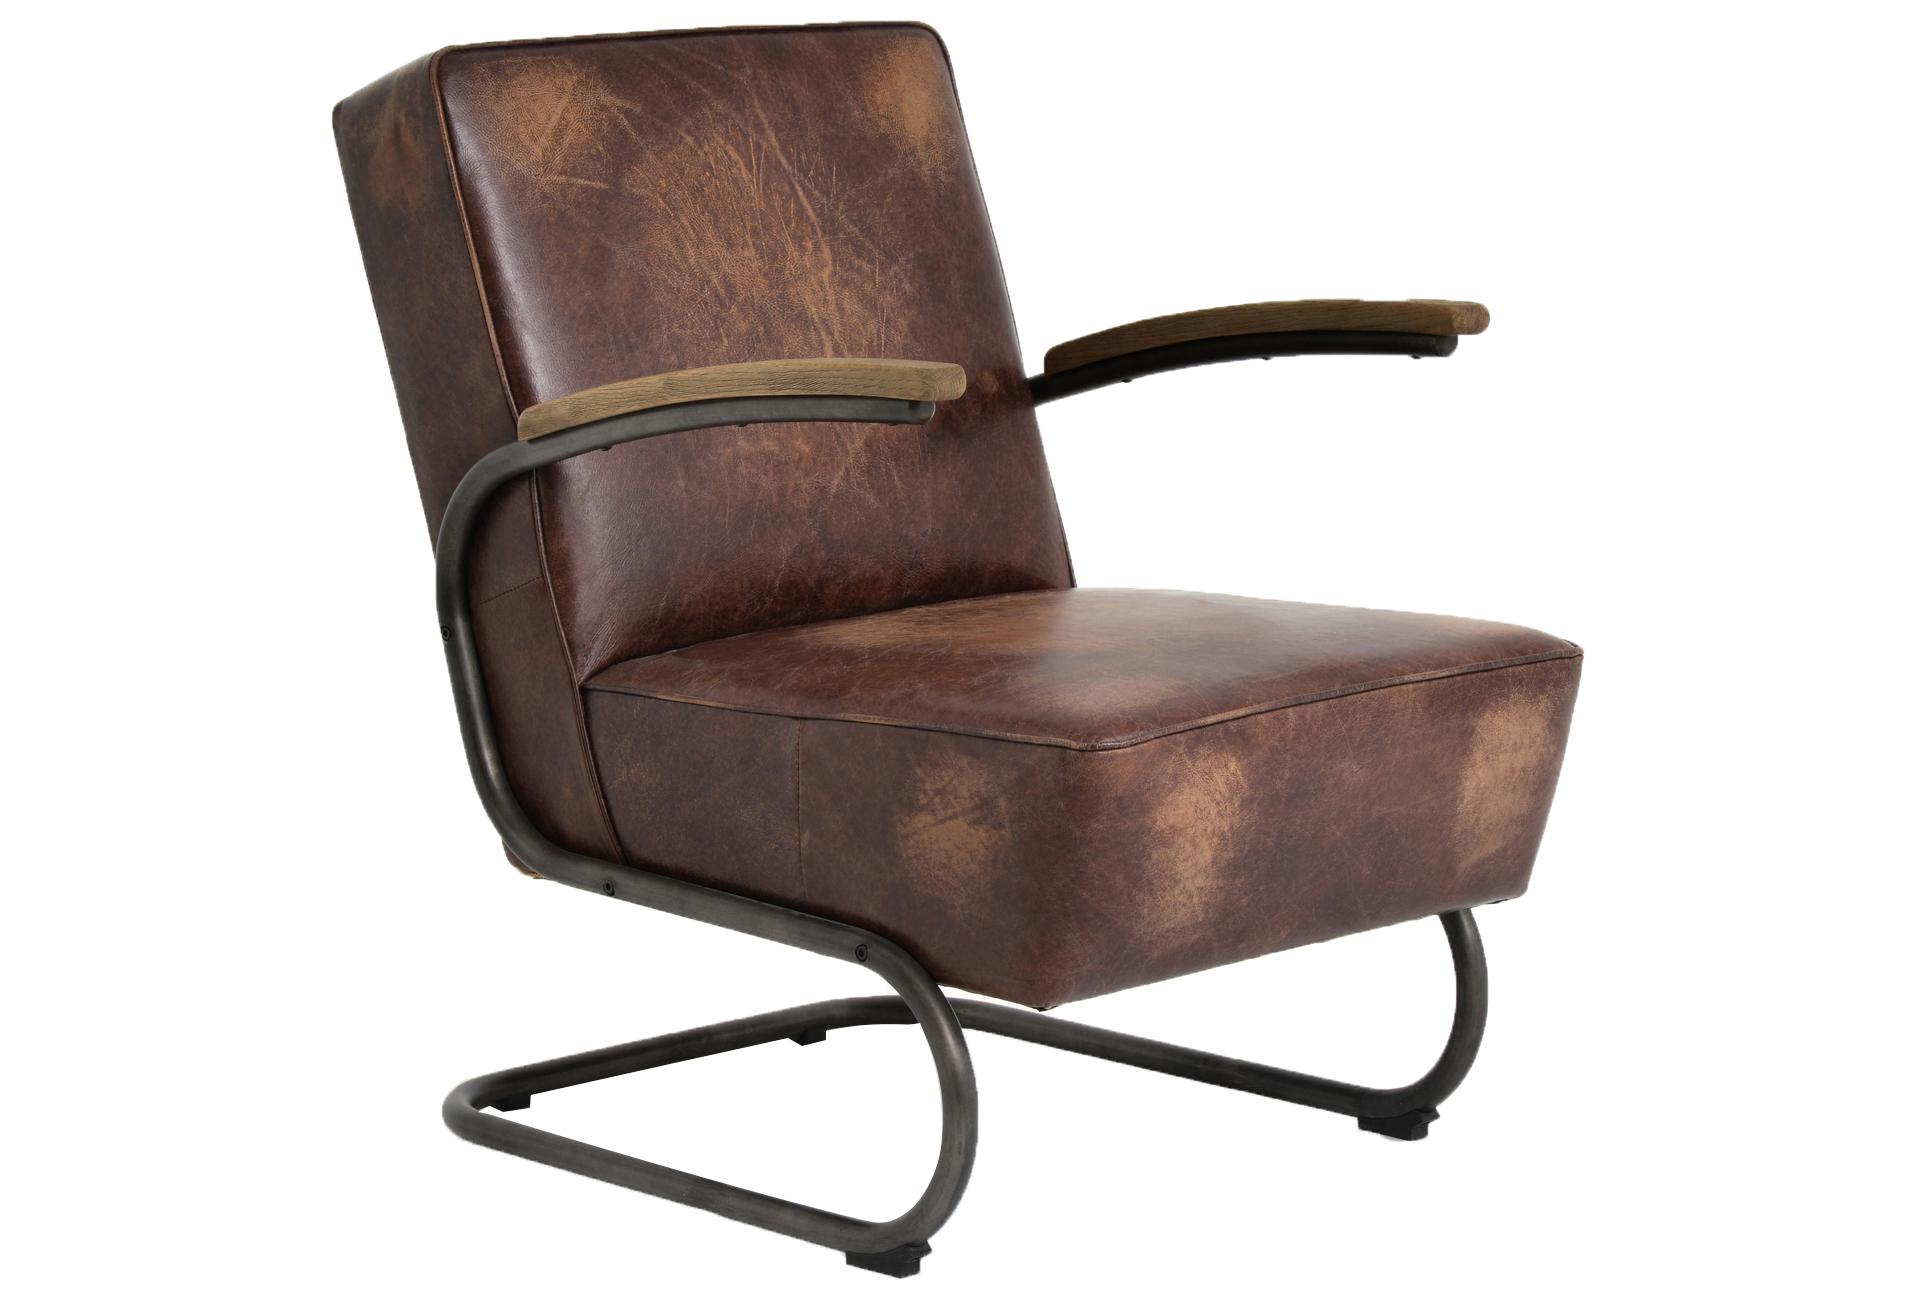 Charmant Gregory Club Chair (Qty: 1) Has Been Successfully Added To Your Cart.